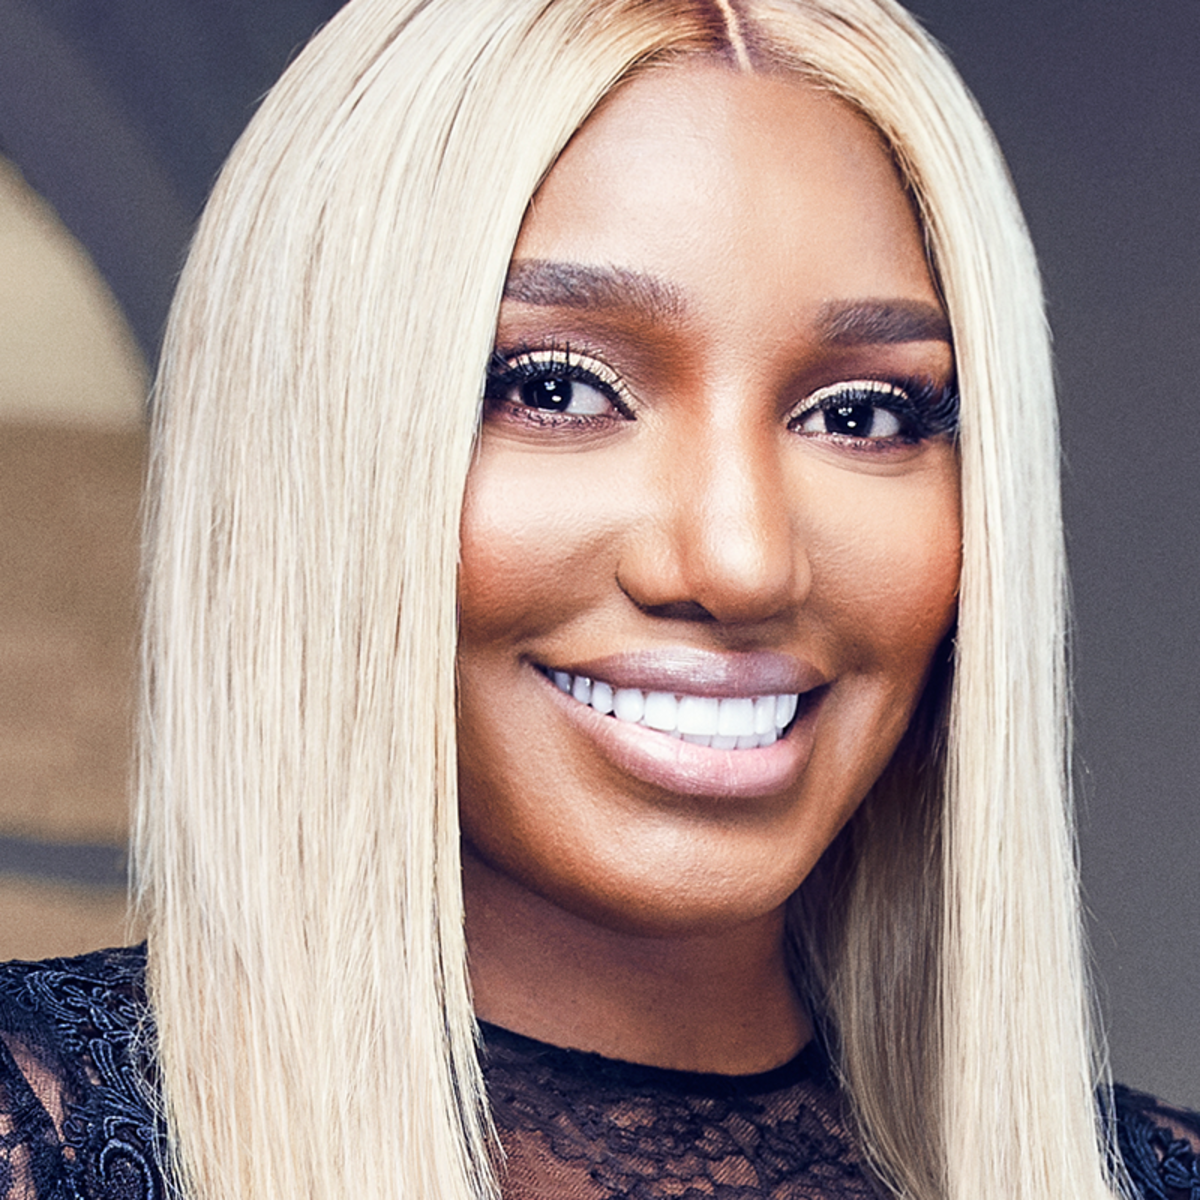 nene-leakes-looks-amazing-in-her-latest-photos-at-the-linnethia-lounge